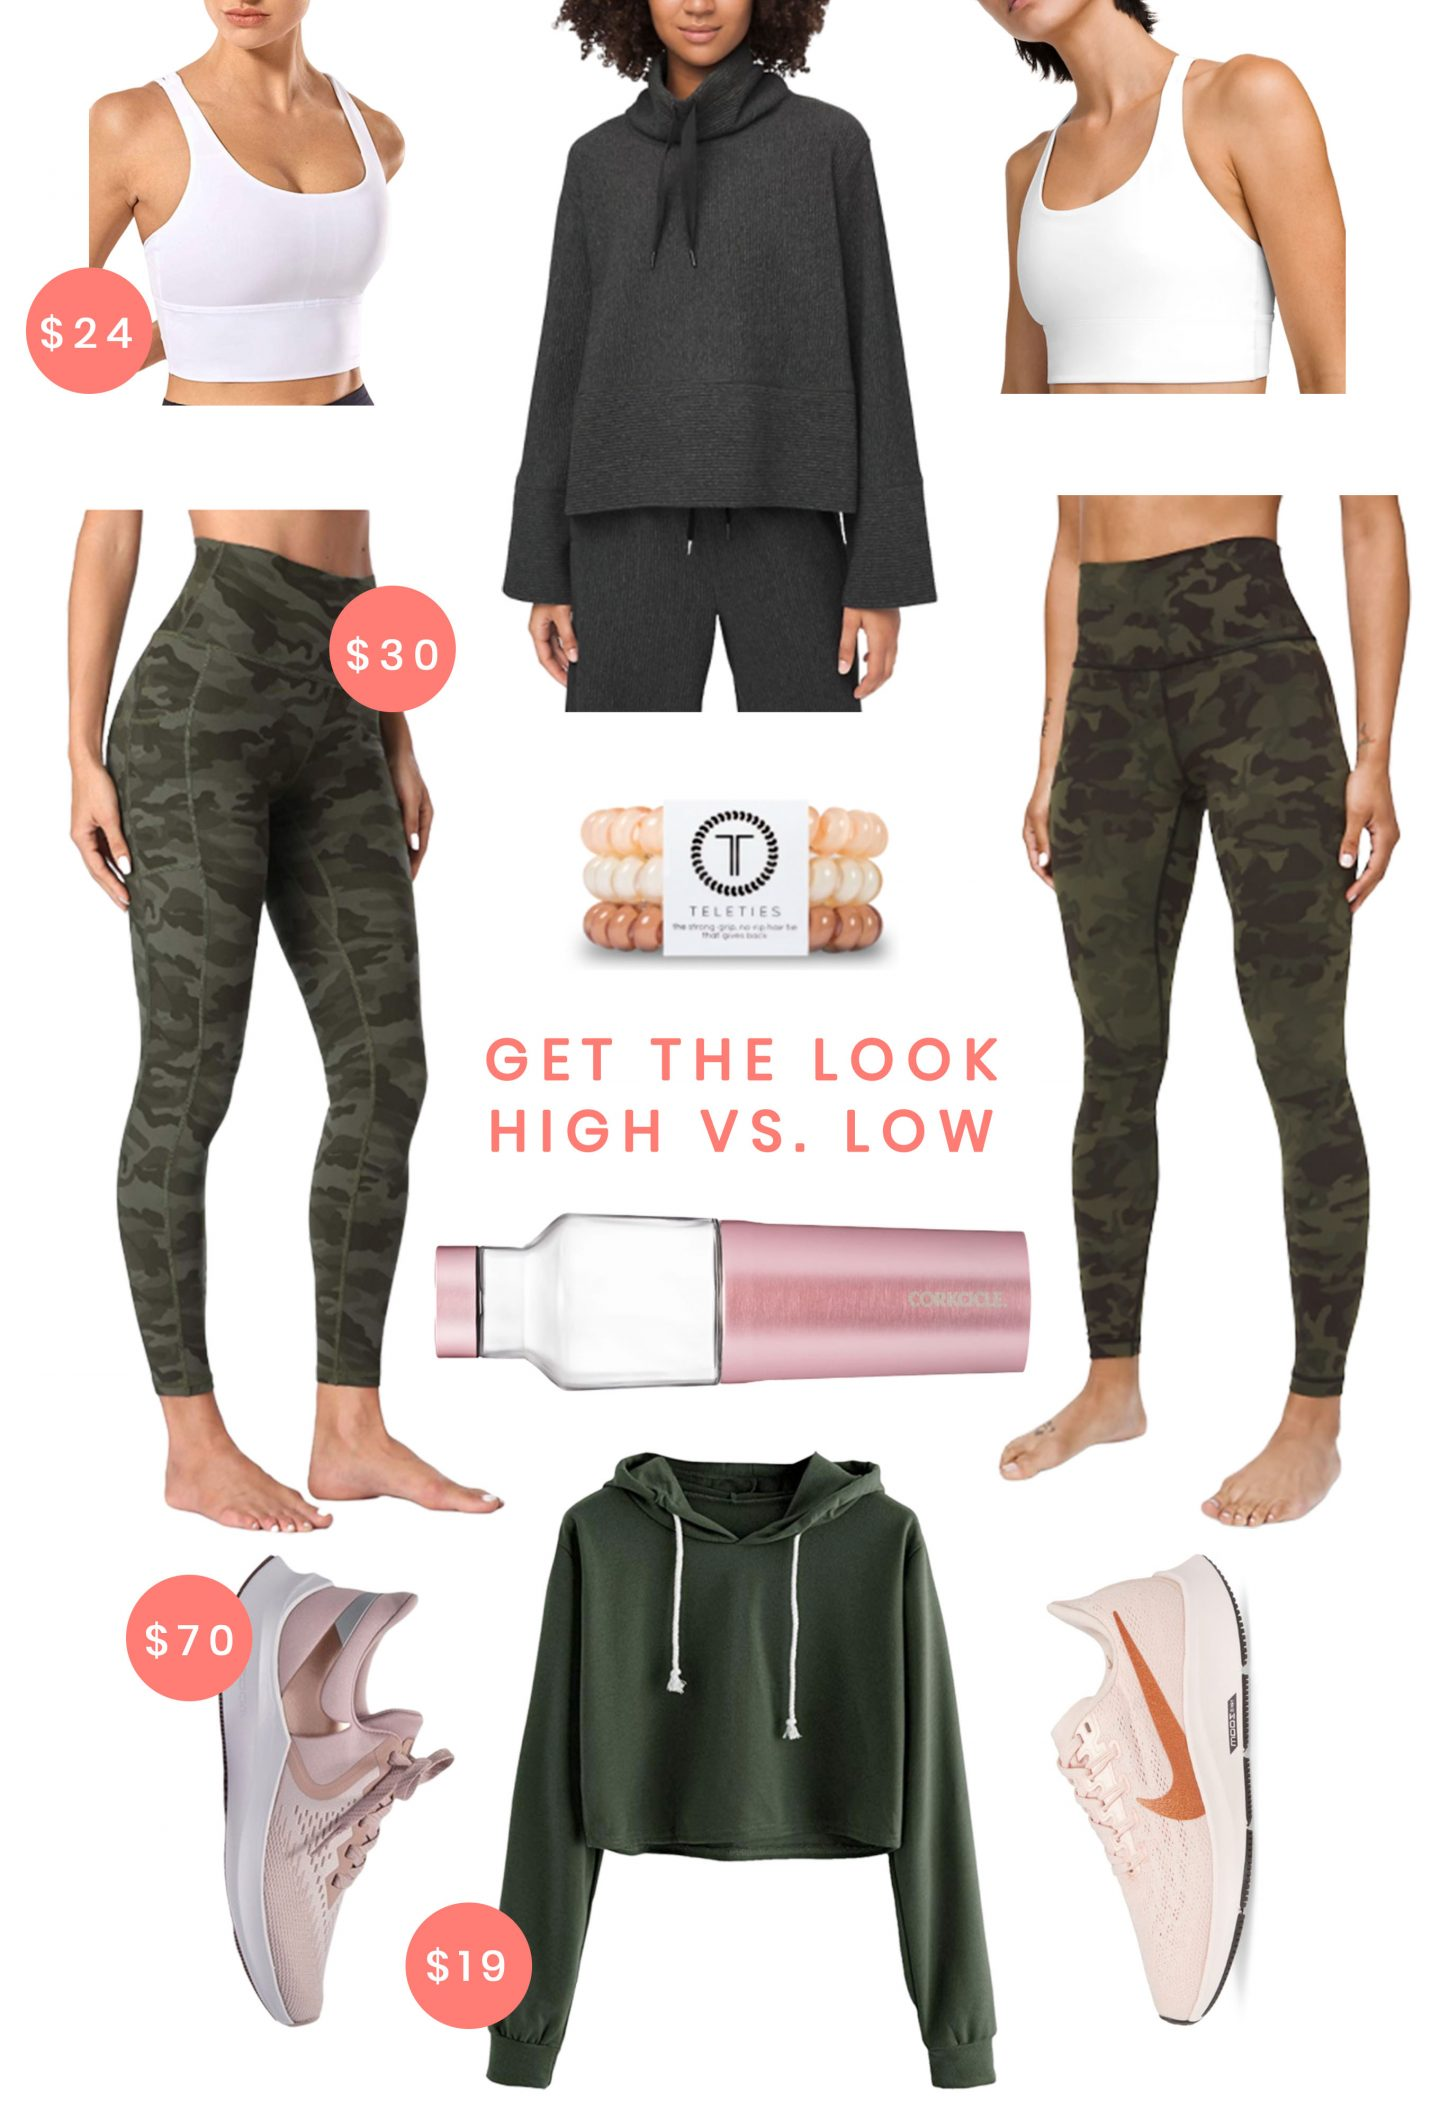 Workout Clothes: High vs. Low